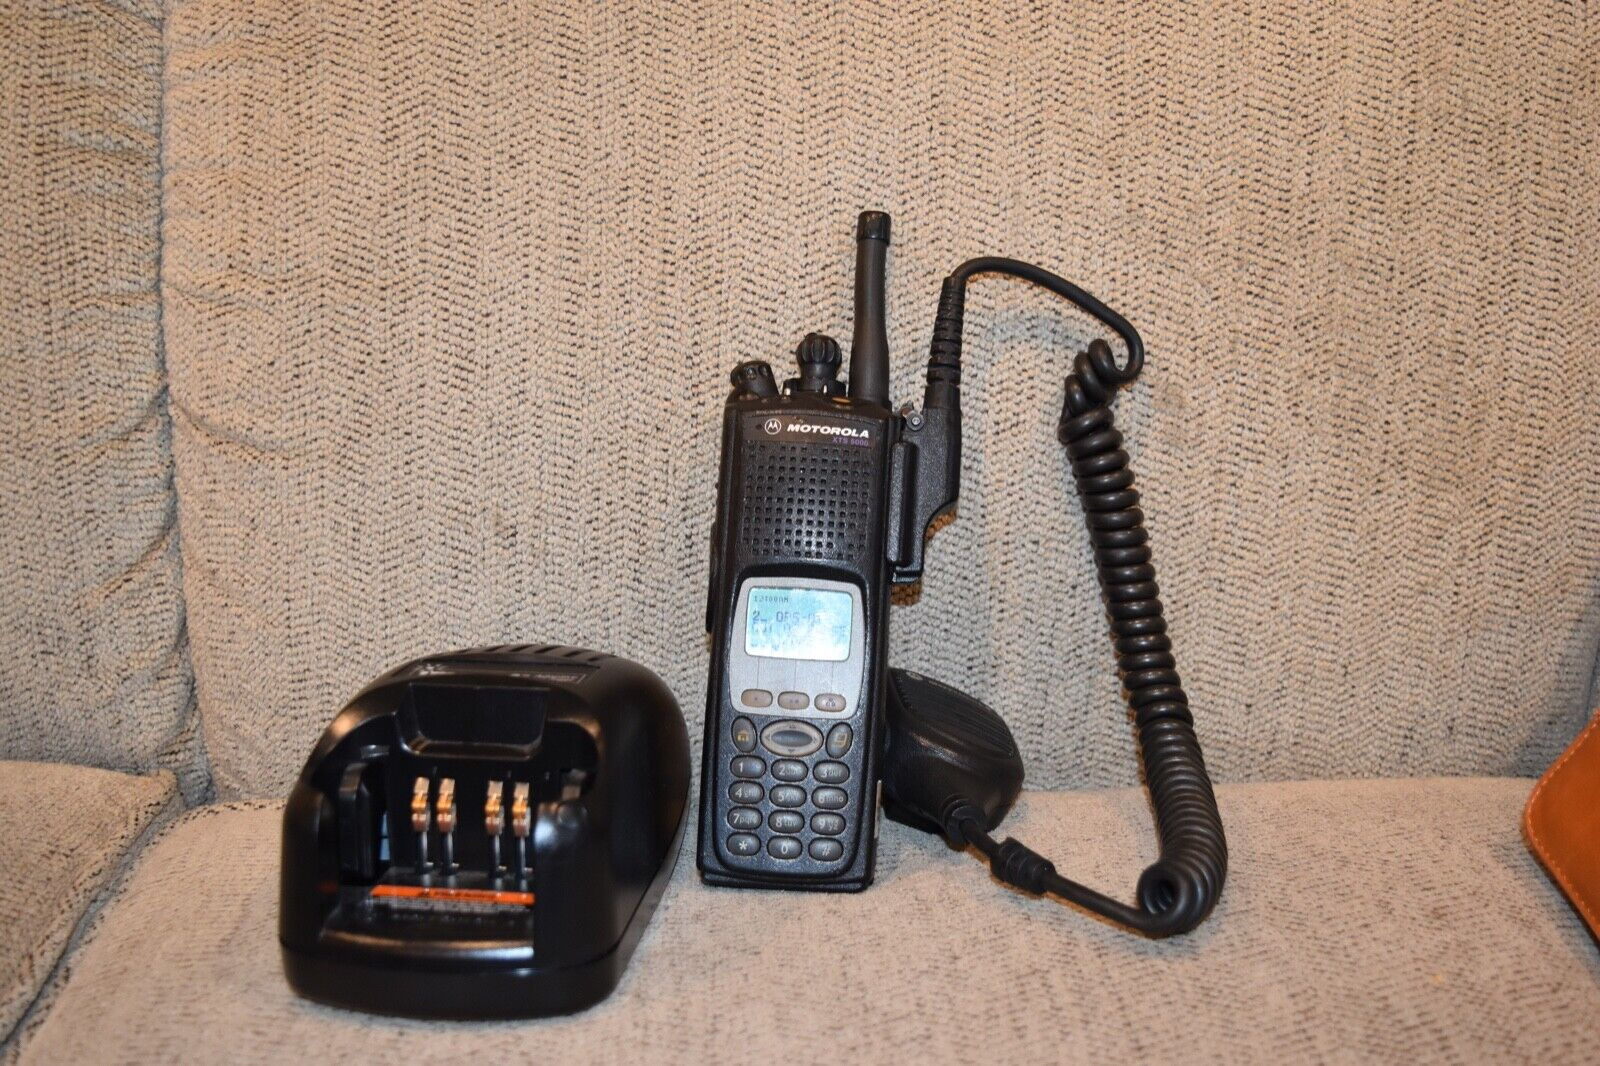 MOTOROLA XTS5000 III UHF 450-520mhz P25 RADIO H18SDH9PW7AN + mic & charger. Buy it now for 489.95